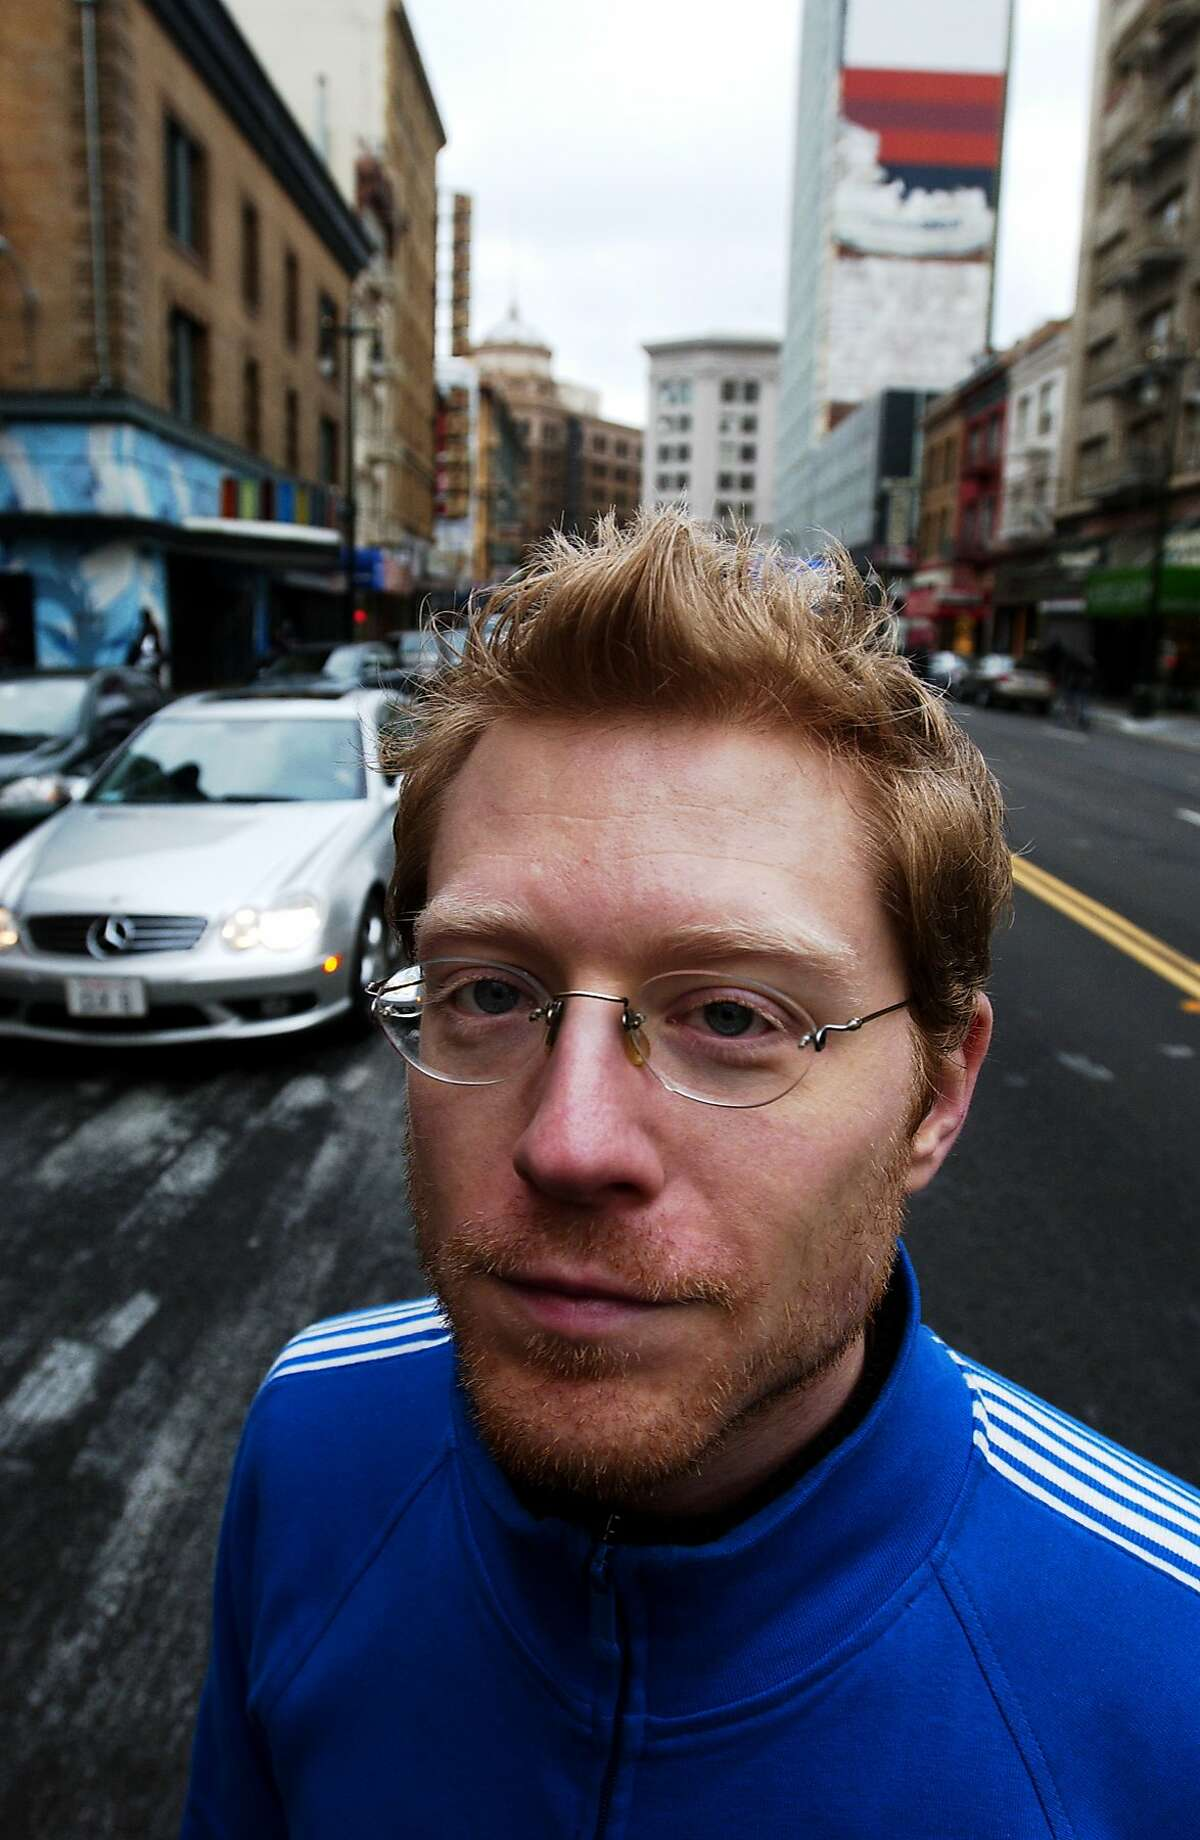 """Actor Anthony Rapp on Sixth St. in San Francisco CA Friday Feb. 17, 2006. Rapp came out of nowhere to work in a musical in development in 1996 that came to be called Rent. More recently he starred in the film version of the play, with many of the """"New York"""" scenes filmed on Sixth St. in San Francisco. Rapp has written a memoir called Without You, which is about the very emotional creation of Rent as well as his coping with his mother's terminal cancer. Victor J. Blue / The ChronicleRan on: 02-21-2006 Anthony Rapp, above, and top with his mother, older brother and sister, in a circa 1983 photo that appears in his memoir, Without You."""